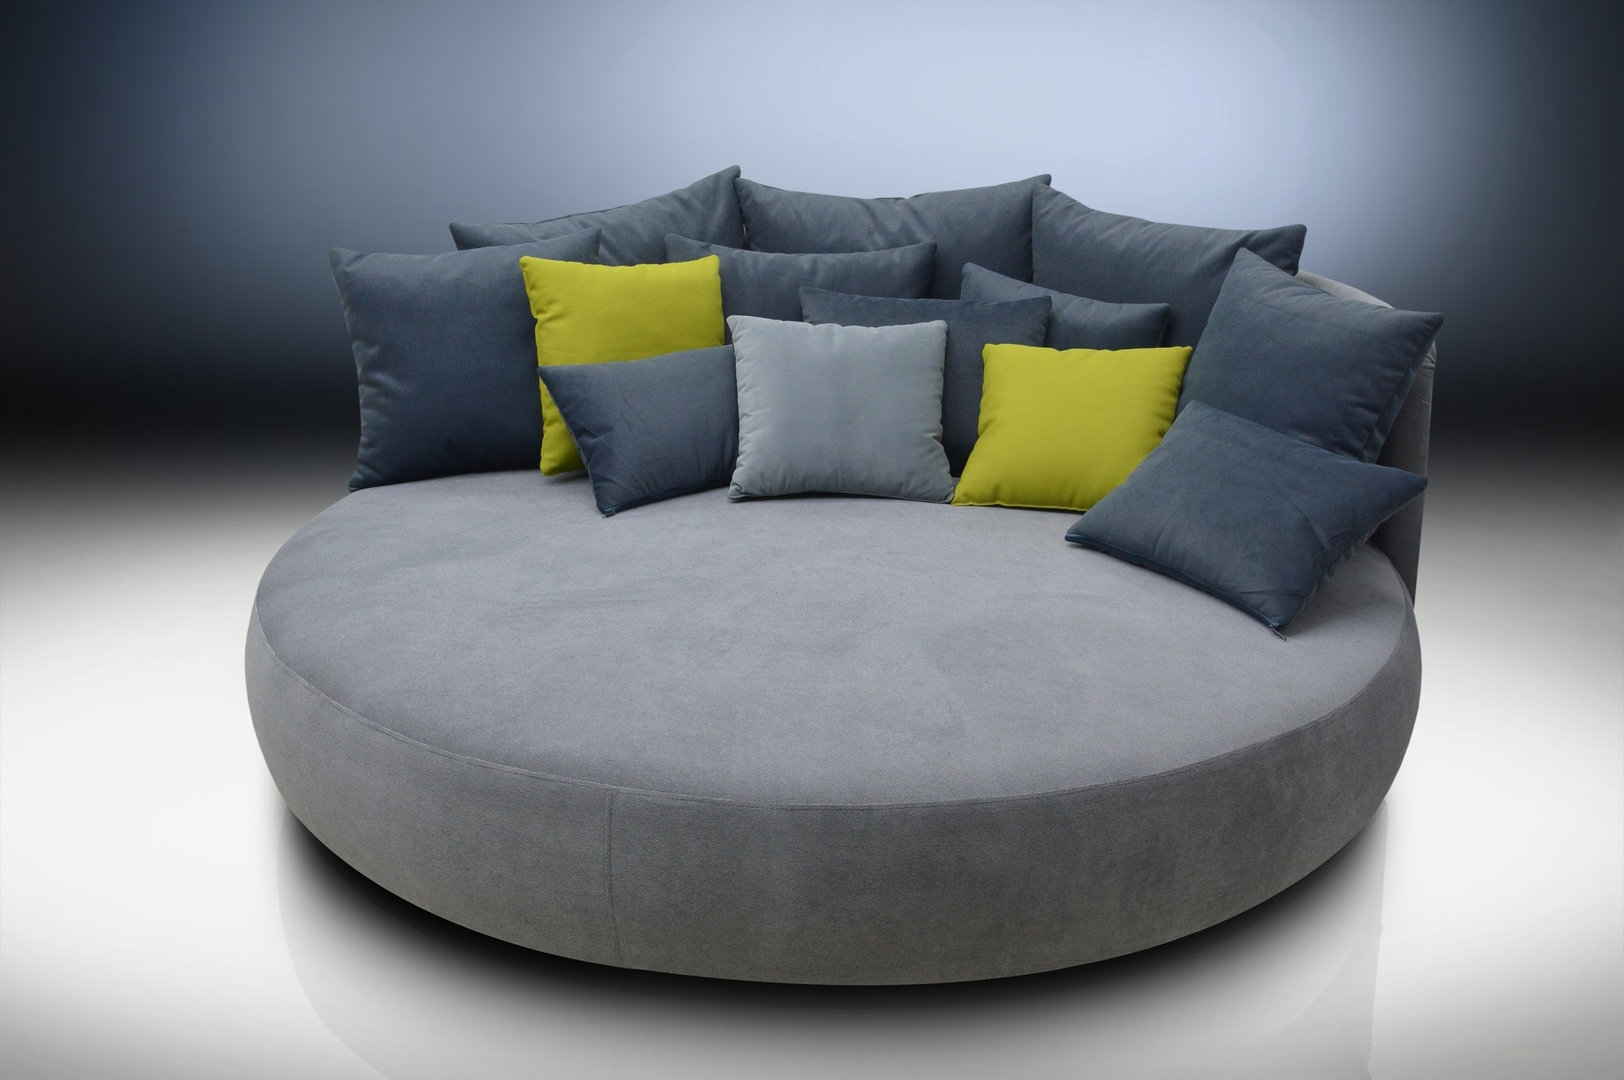 Showing Photos Of Round Sofas View 7